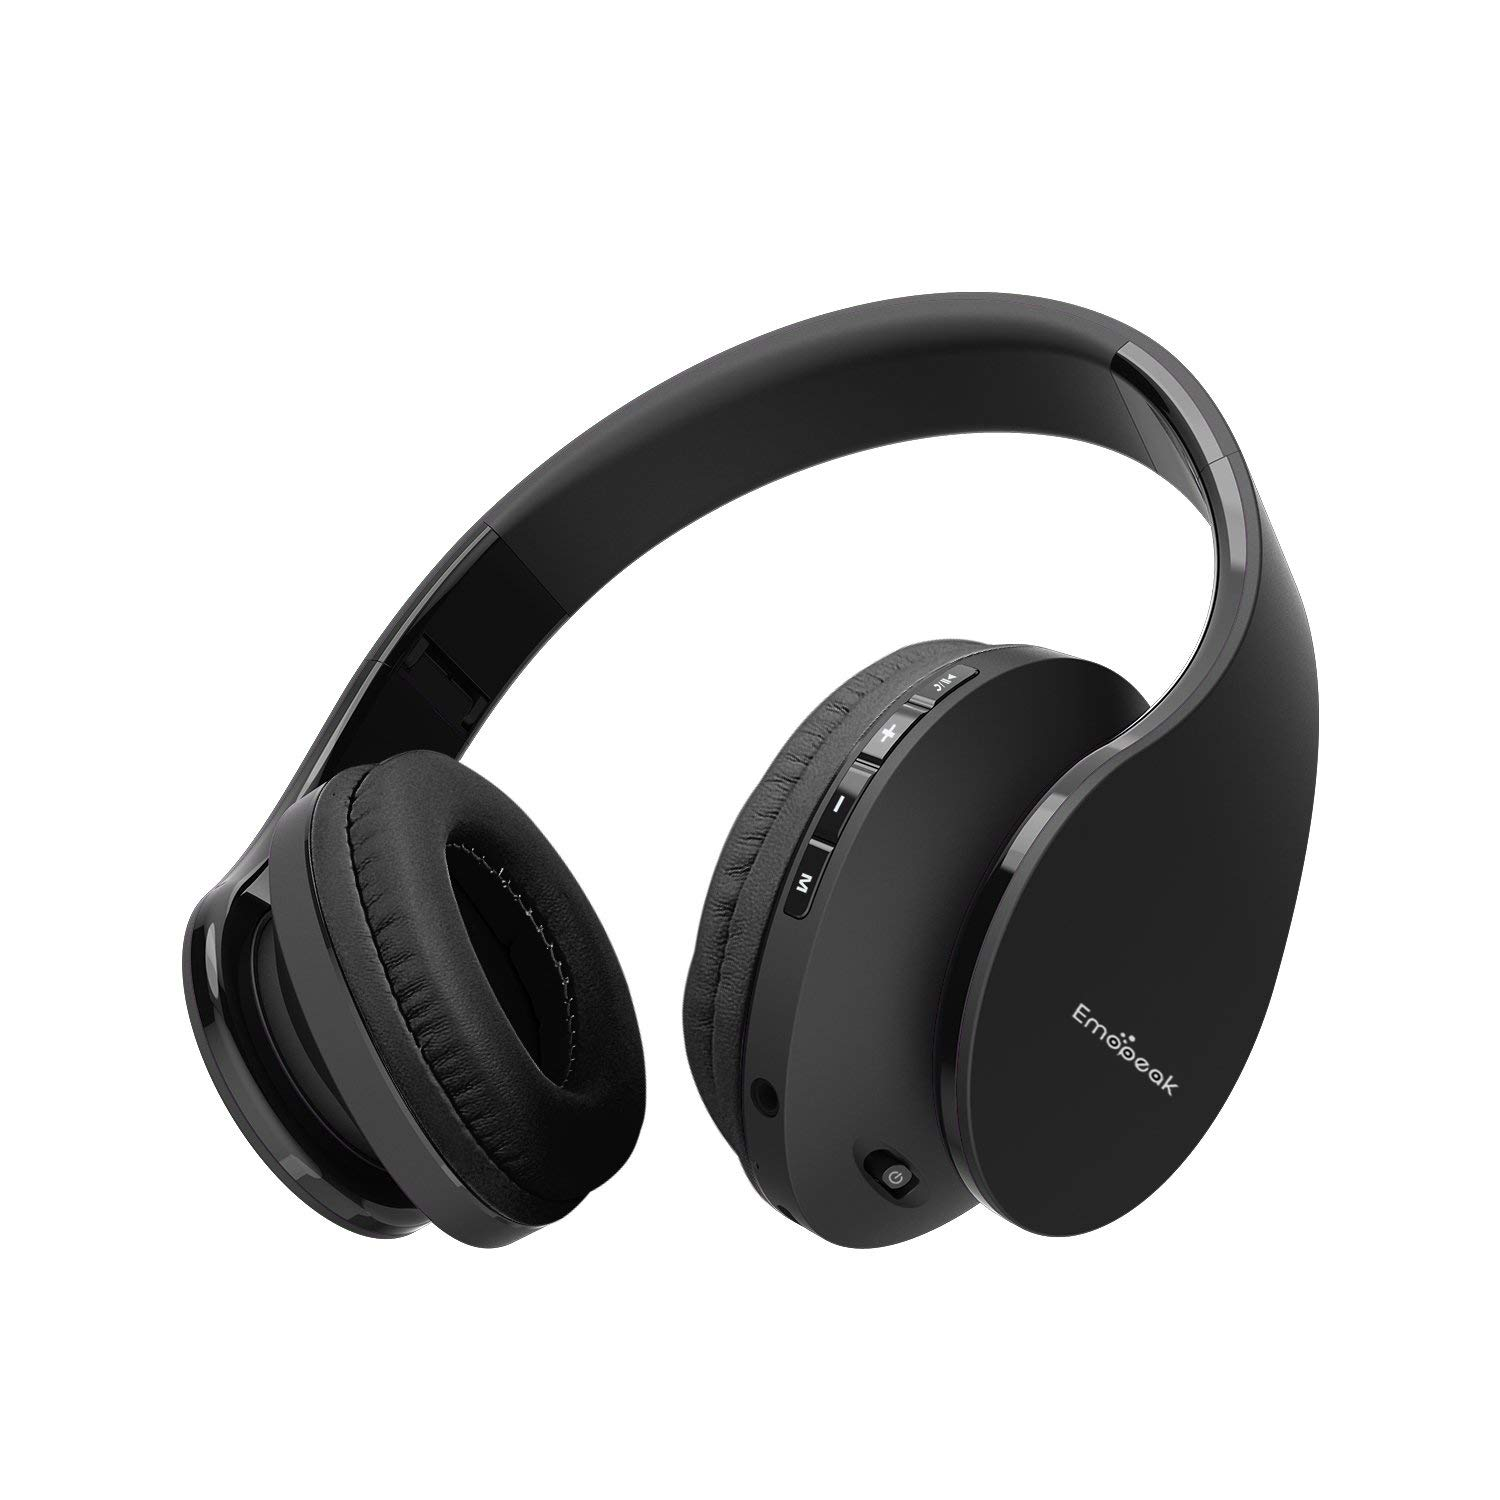 Wireless Bluetooth Headphones Over Ear, Emopeak Q5 Wireless Headsets, Hi-Fi Stereo, Foldable, Soft Memory, Protein Earmuffs, Built-in Microphone and Wired Mode for PC/Cell Phones/TV